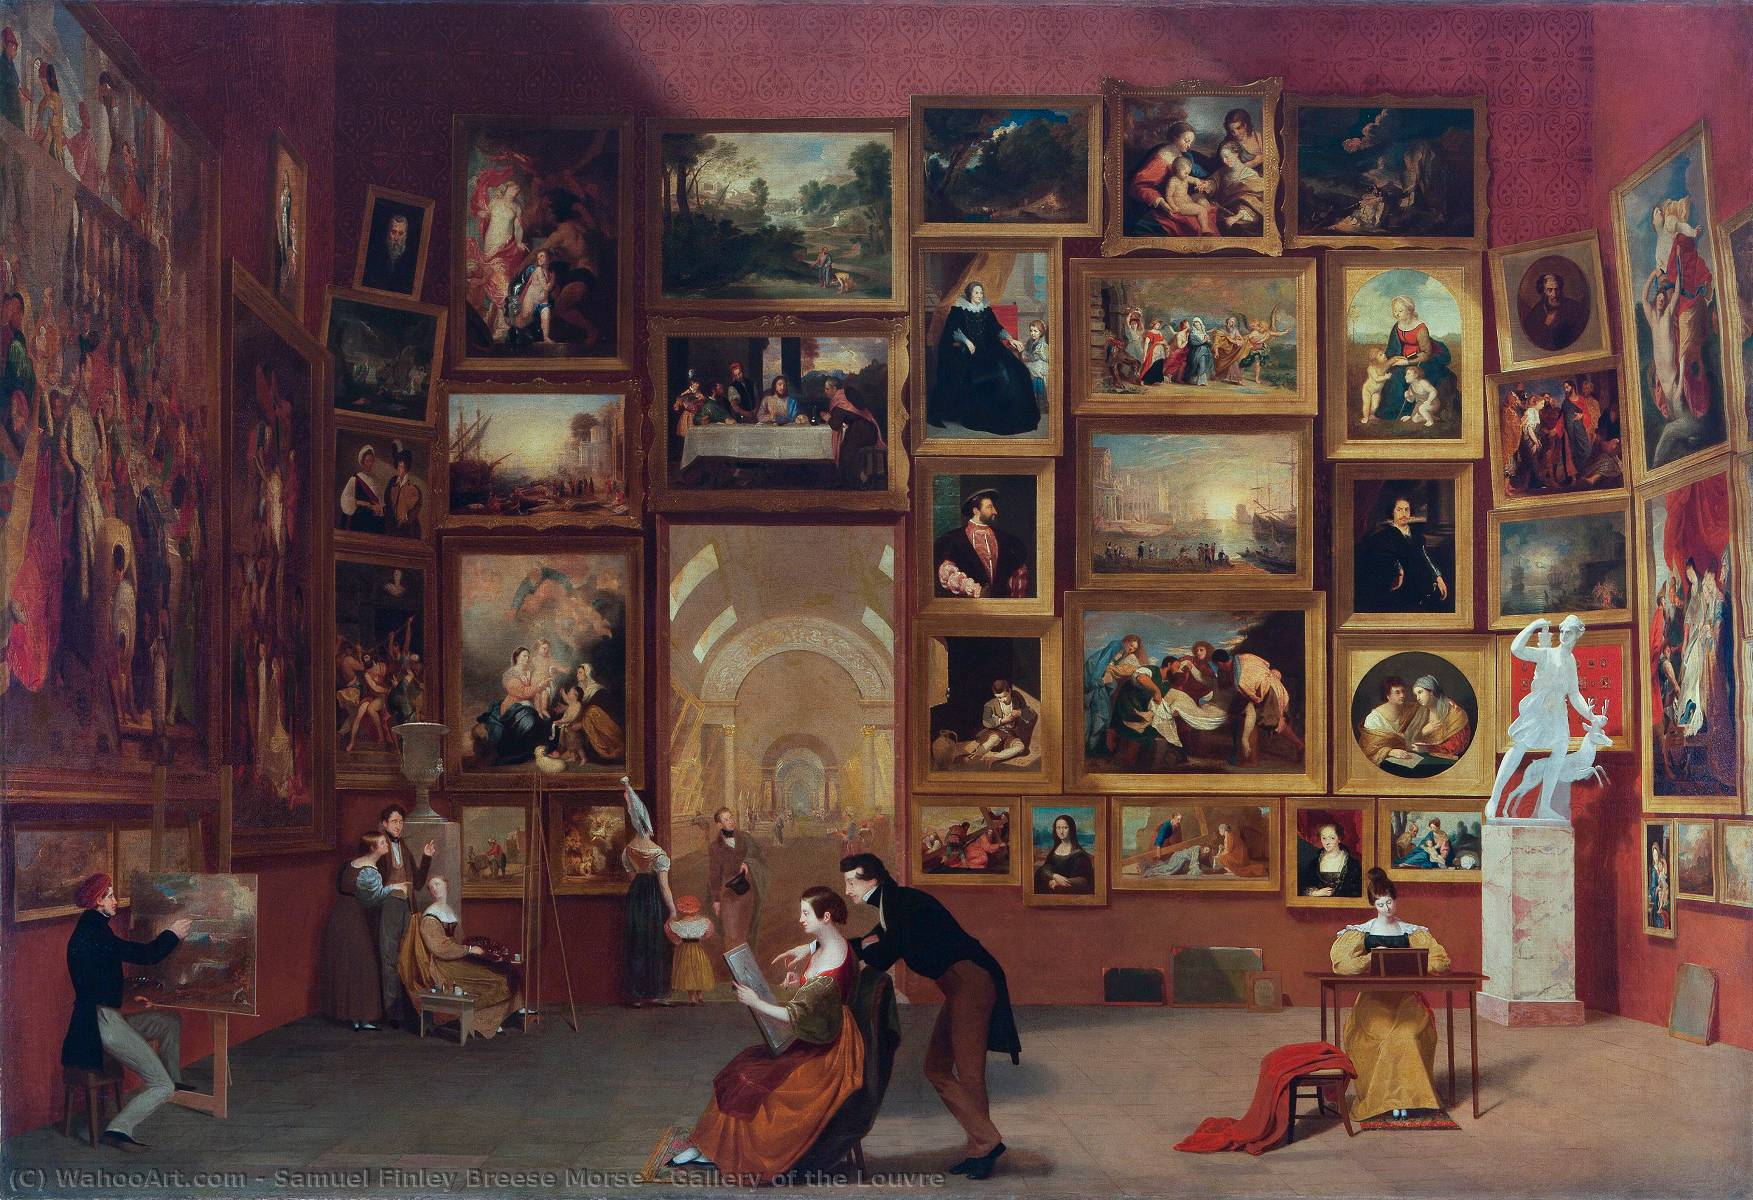 Gallery of the Louvre, 1833 by Samuel Finley Breese Morse (1791-1872, United States) | Art Reproduction | WahooArt.com